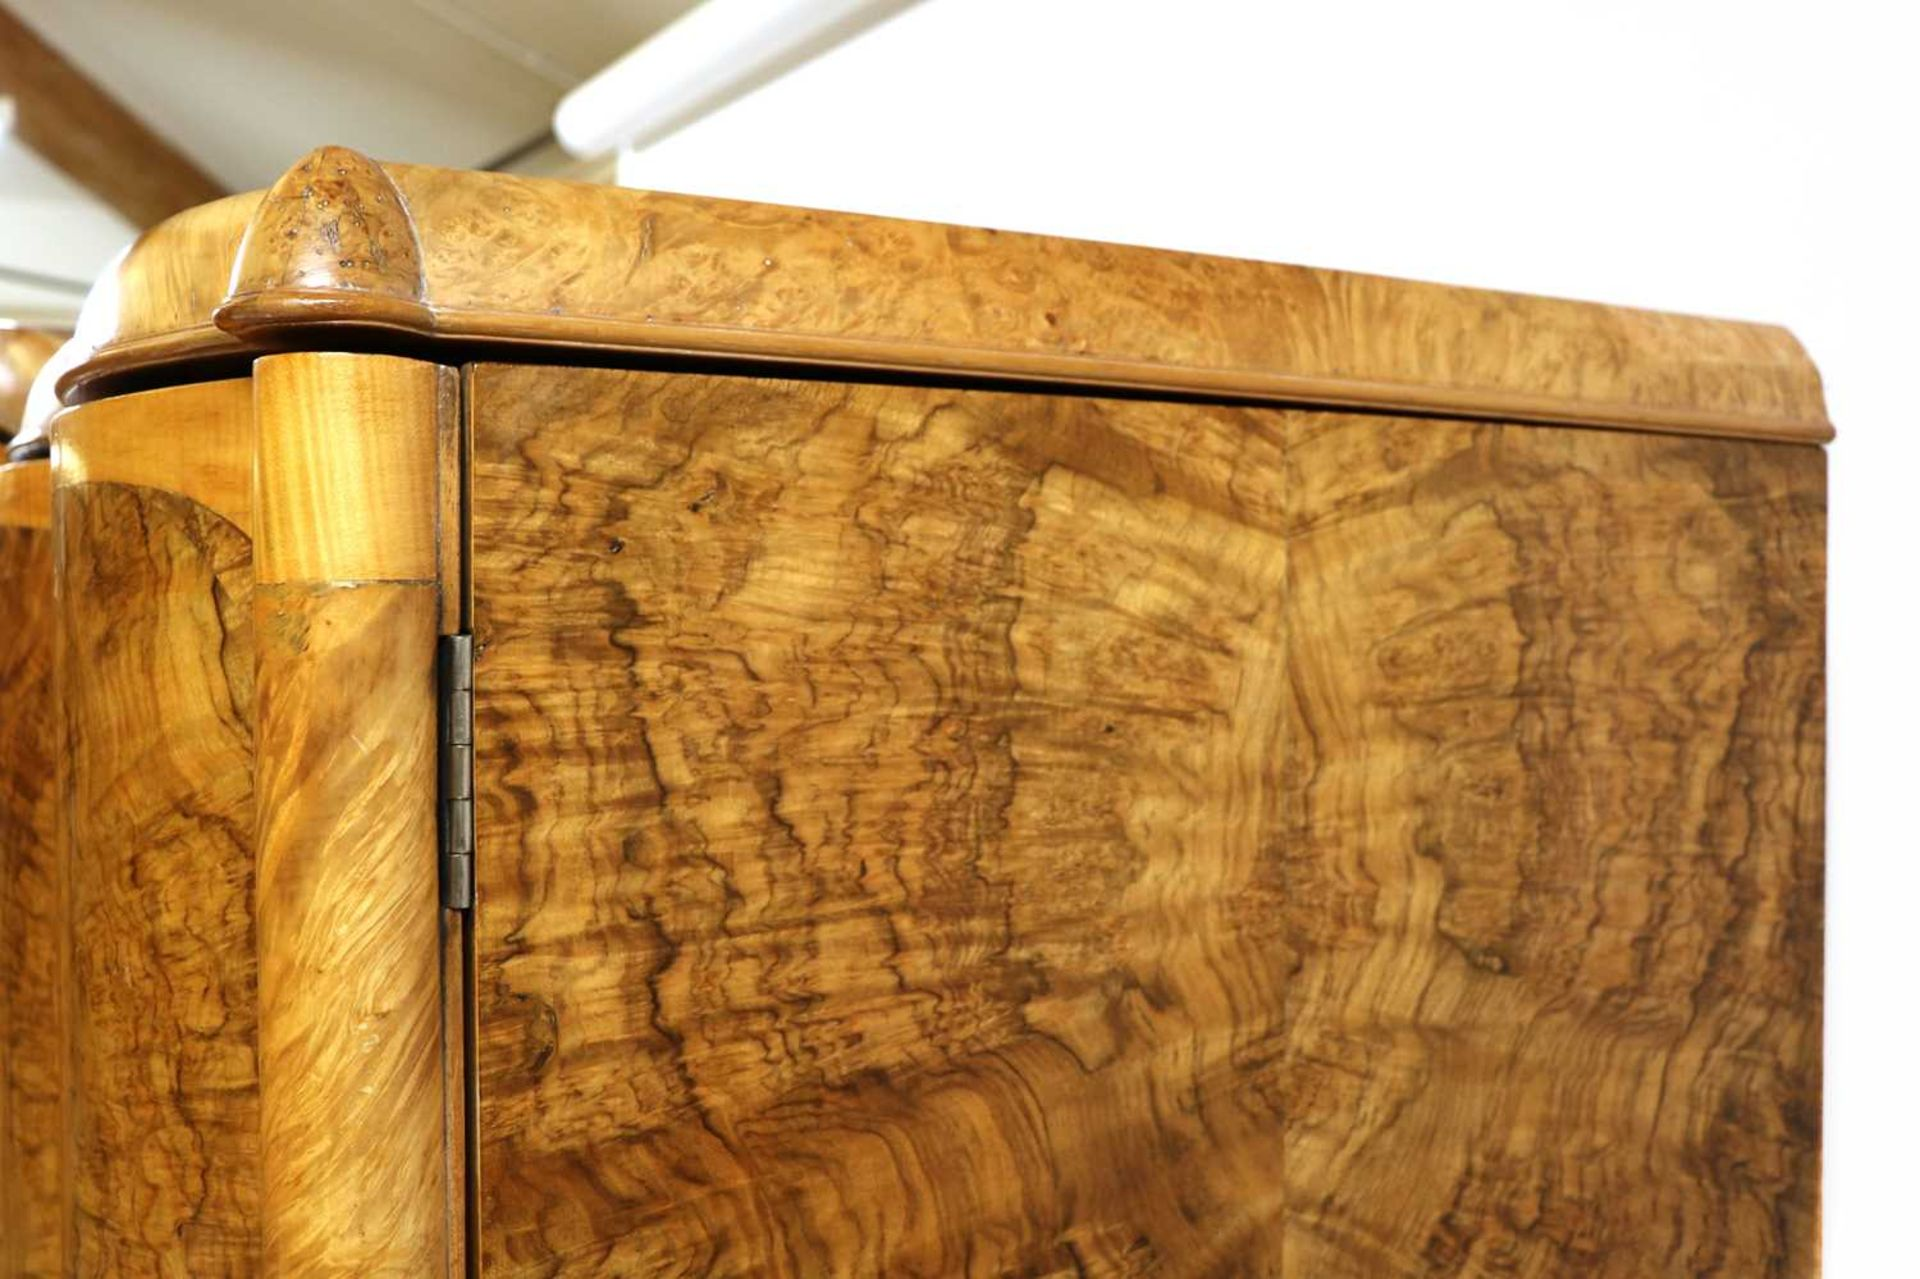 An Art Deco burr walnut and maple bedroom suite, - Image 27 of 45